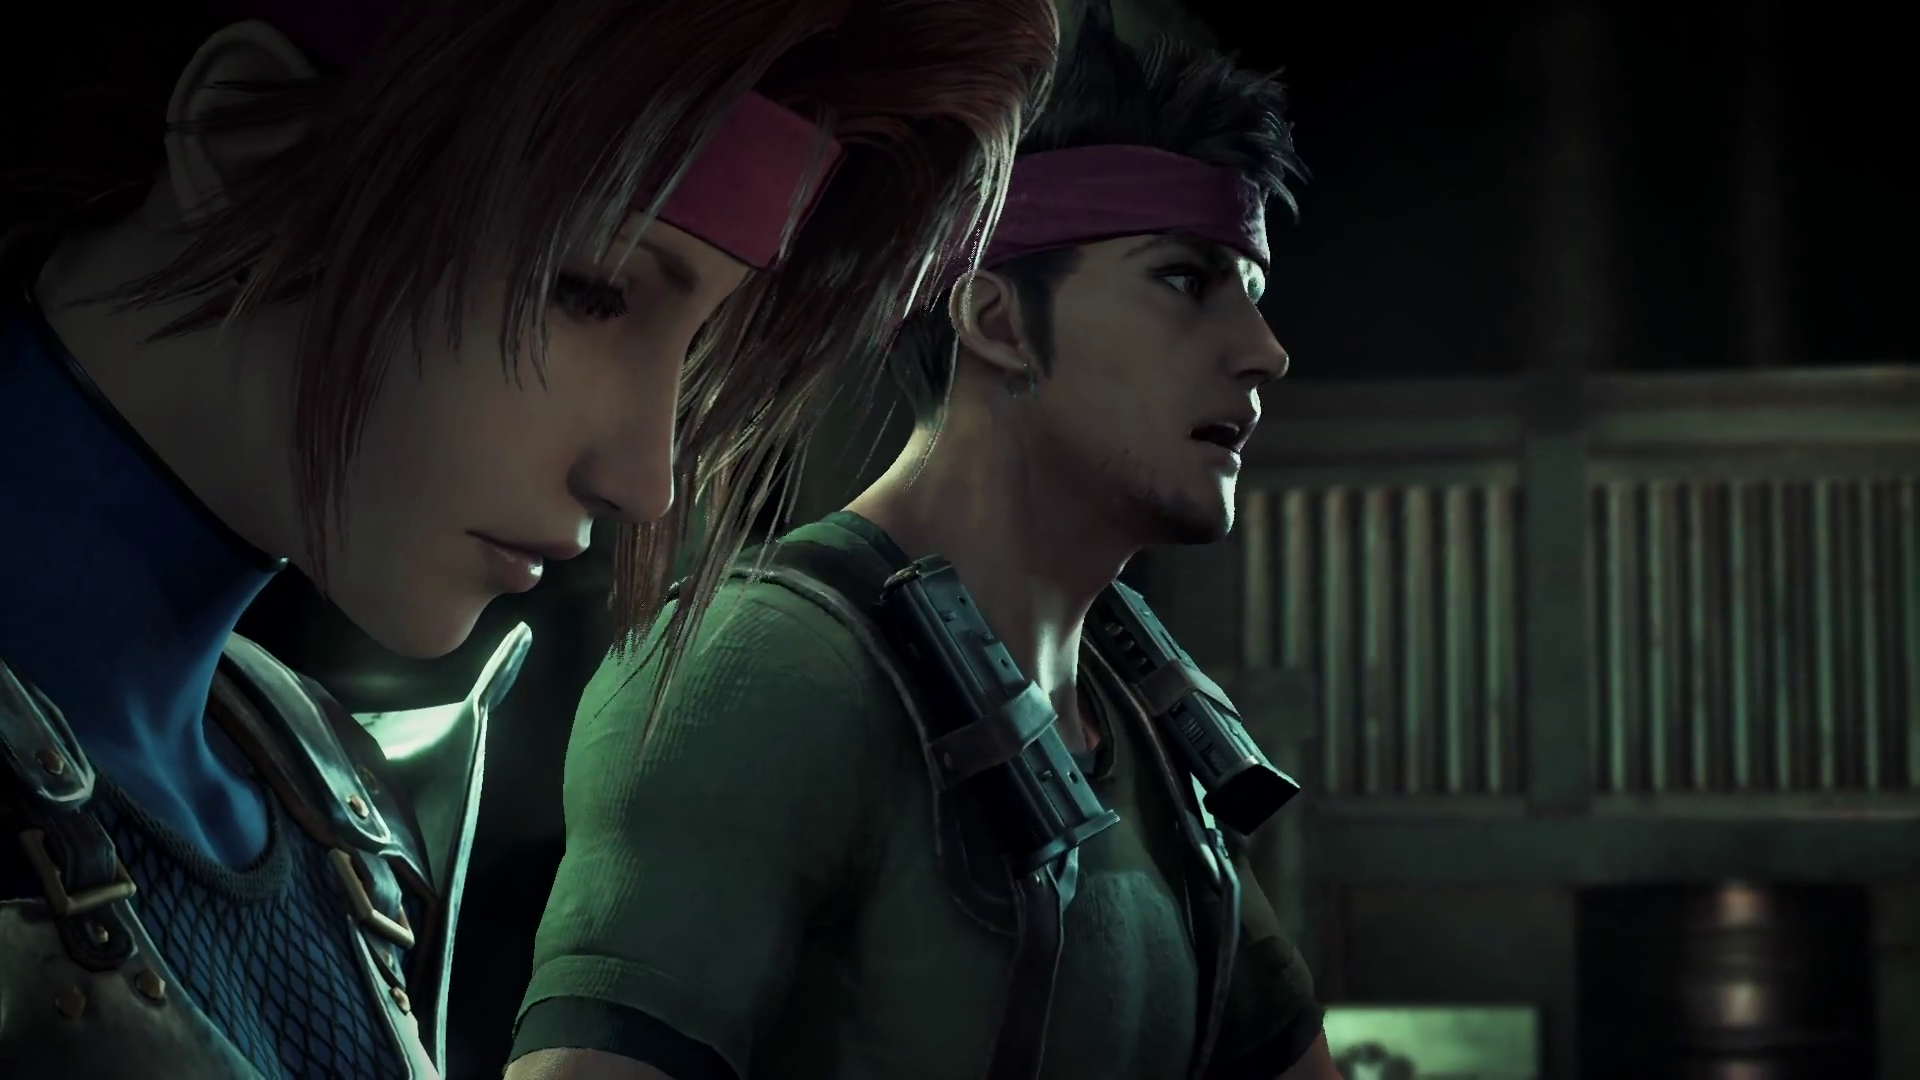 Final Fantasy VII Remake To Be Created With Unreal Engine 4